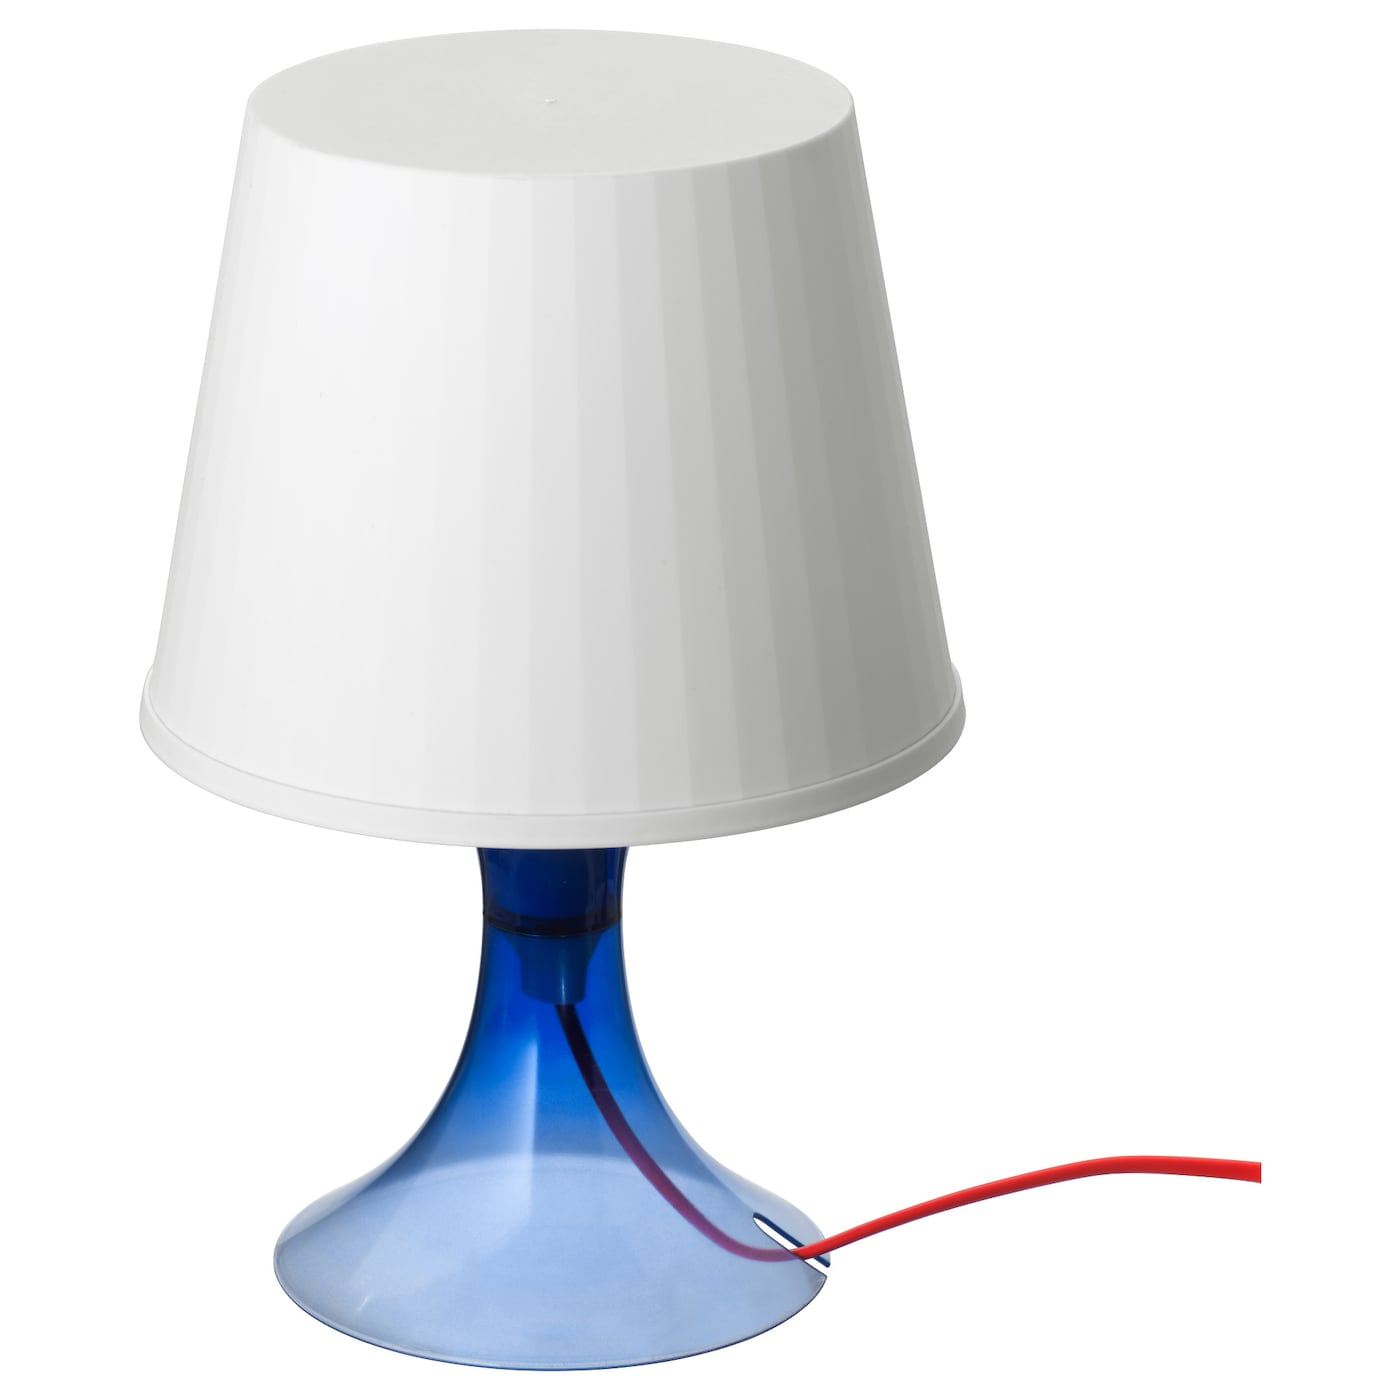 Lampan lampe de table bleu ikea for Base de table ikea